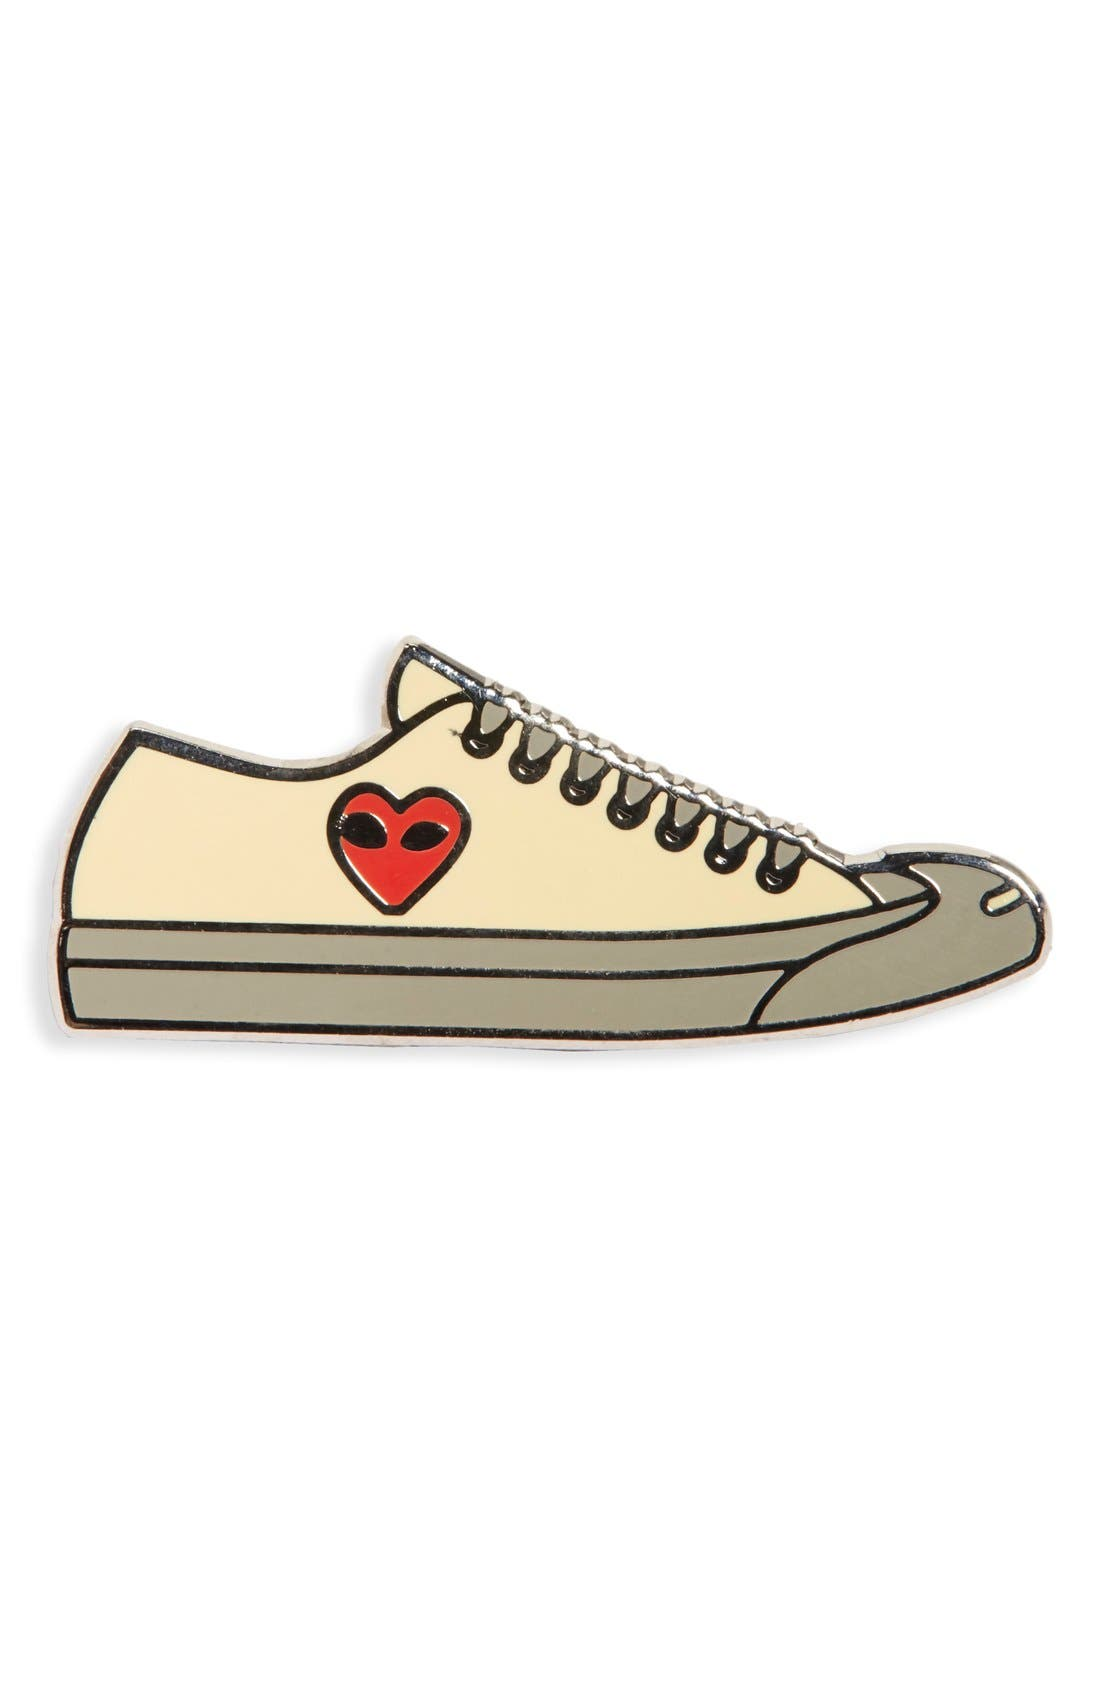 Main Image - PINTRILL 'Low Top Sneaker' Fashion Accessory Pin